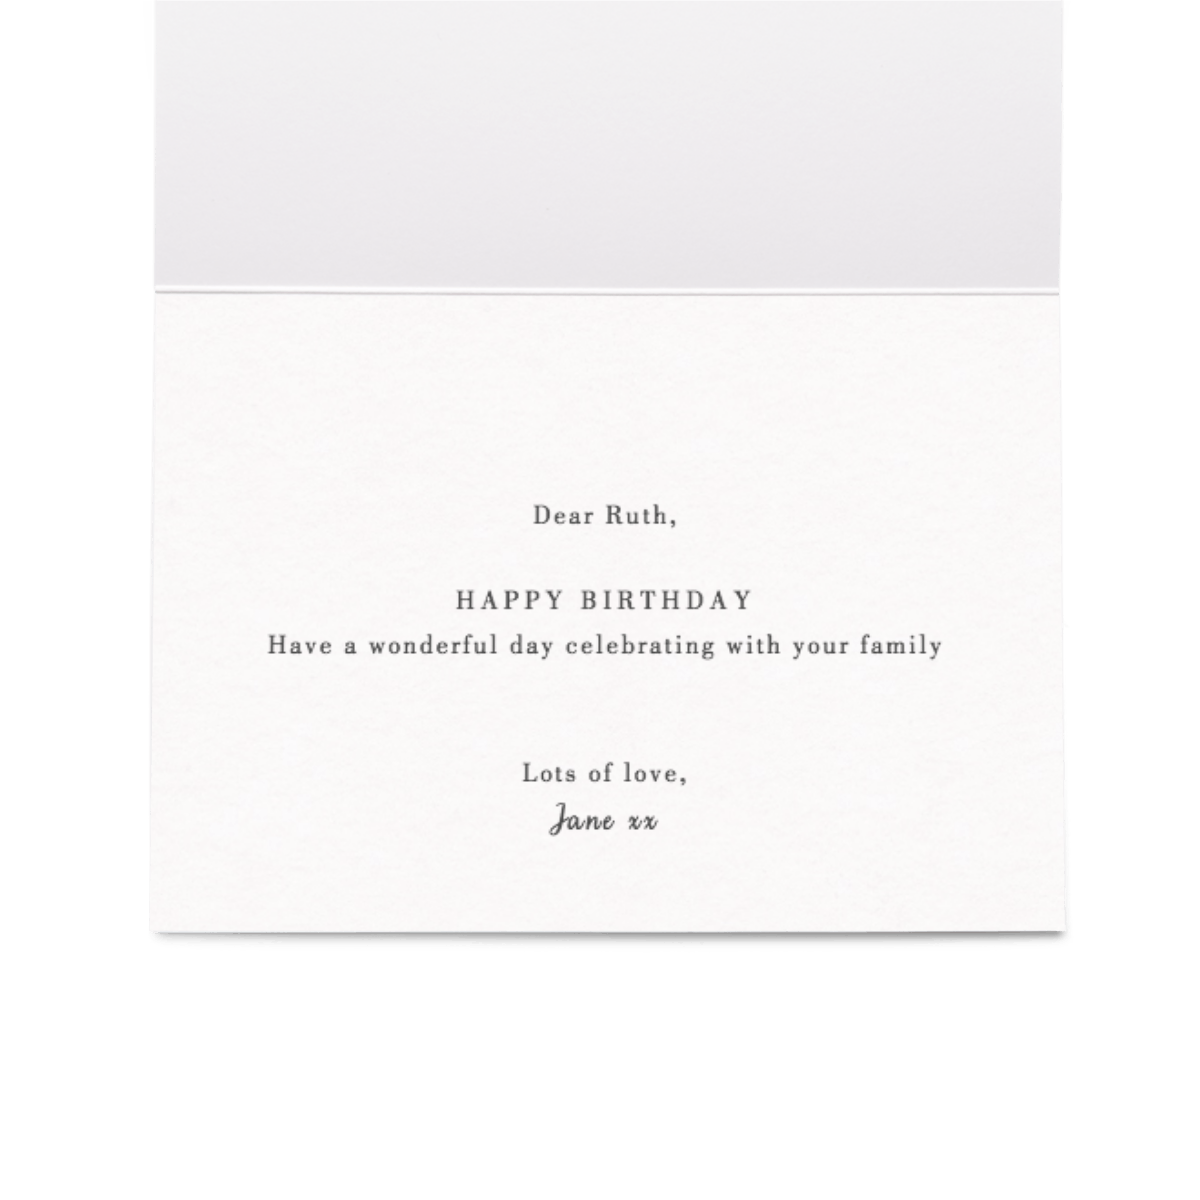 Https%3a%2f%2fwww.papier.com%2fproduct image%2f17367%2f20%2fbirthday picnic 4558 inside 1485791470.png?ixlib=rb 1.1